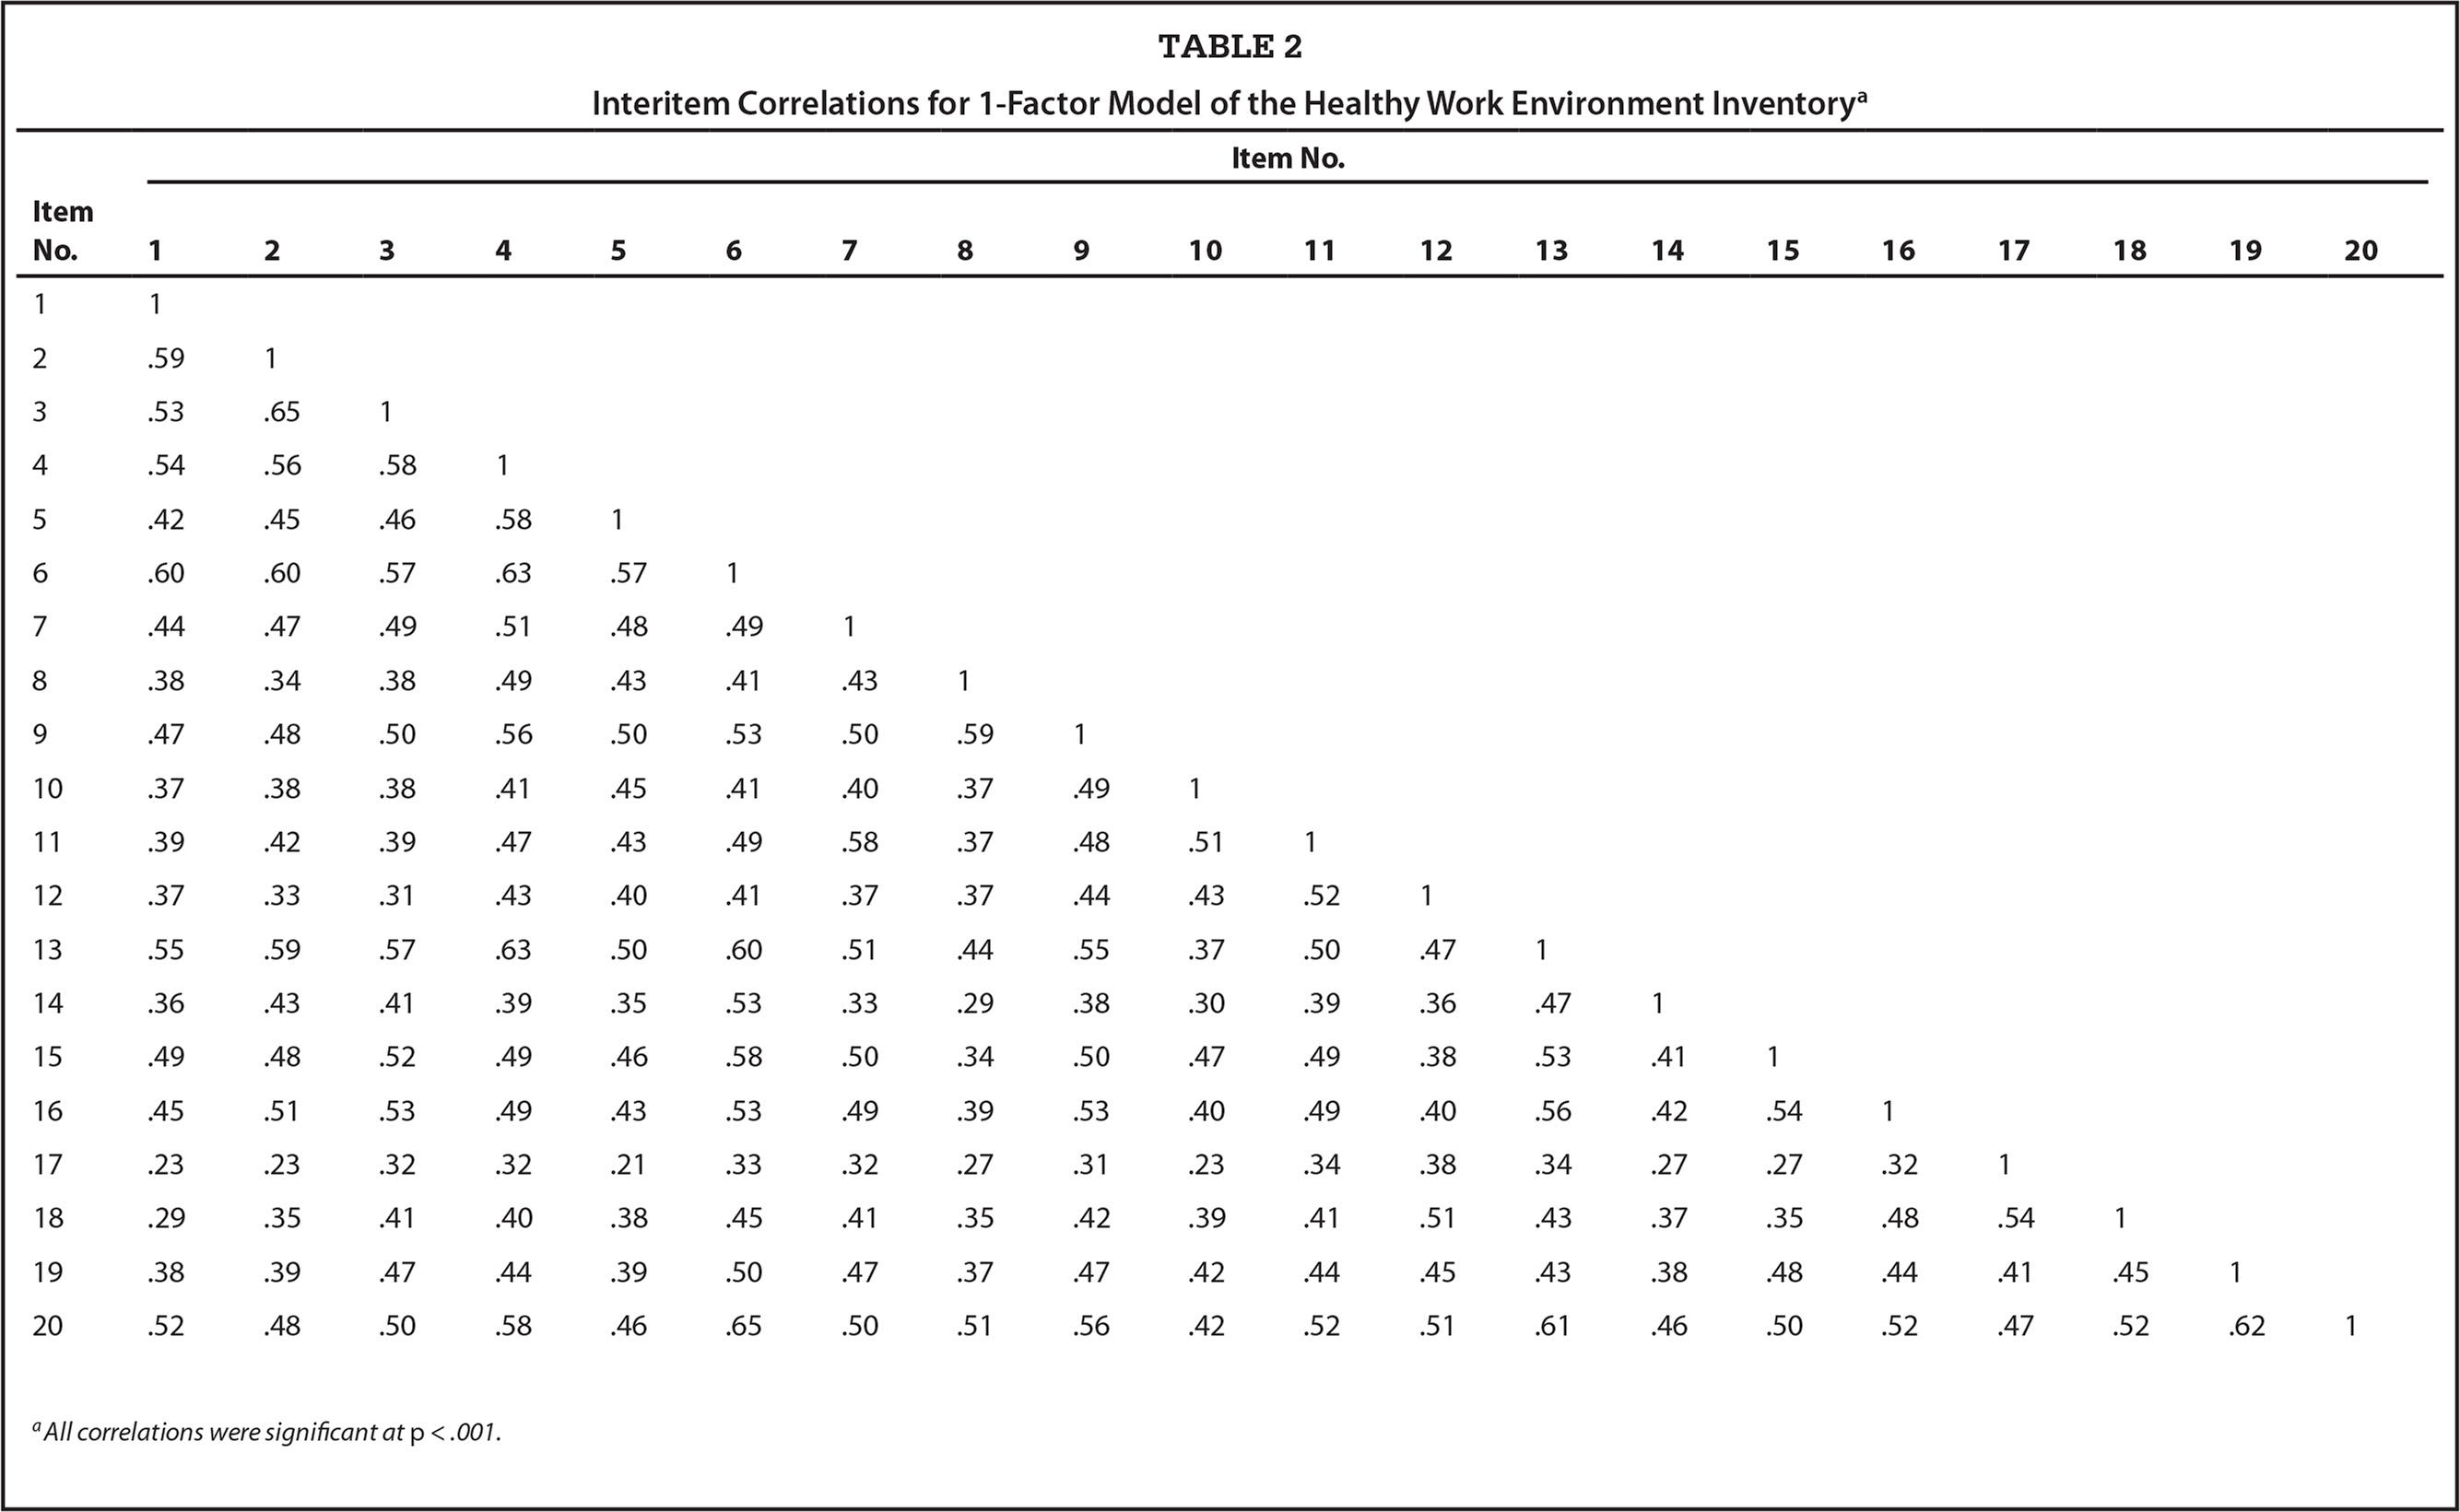 Wsu environmental health safety environmental health - Interitem Correlations For 1 Factor Model Of The Healthy Work Environment Inventorya